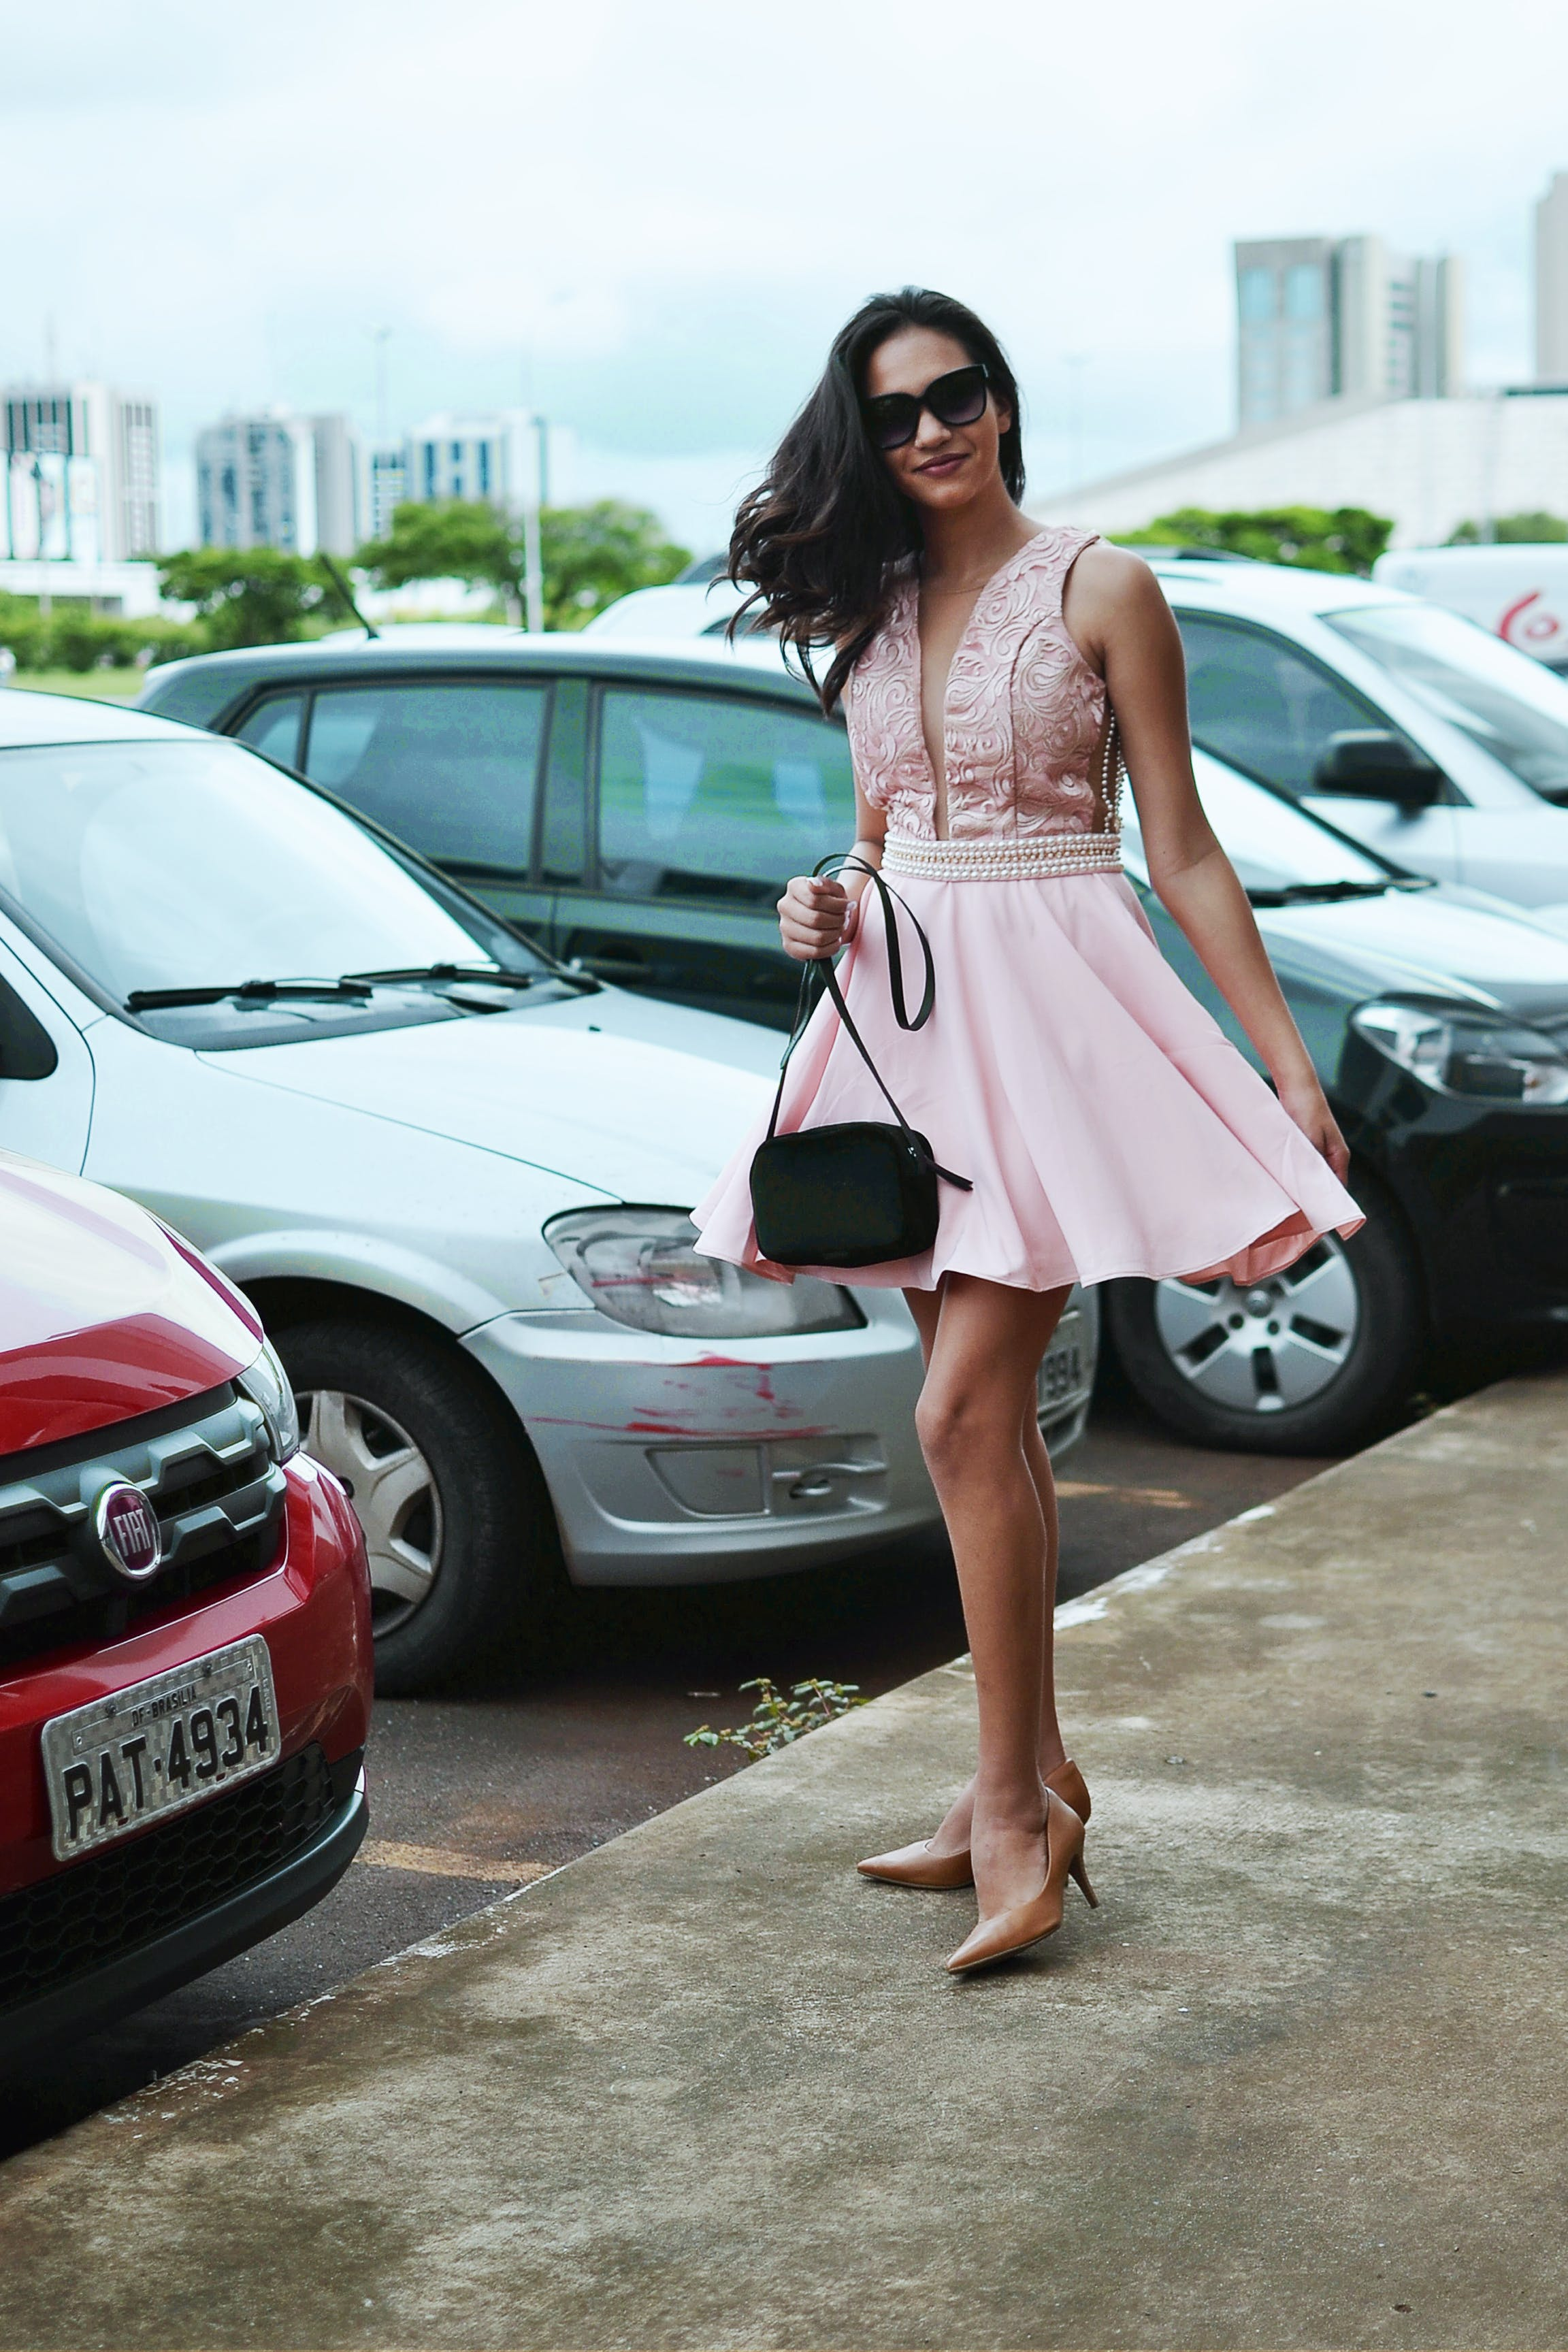 Woman Wearing Pink Sleeveless Dress Holding Black Bag